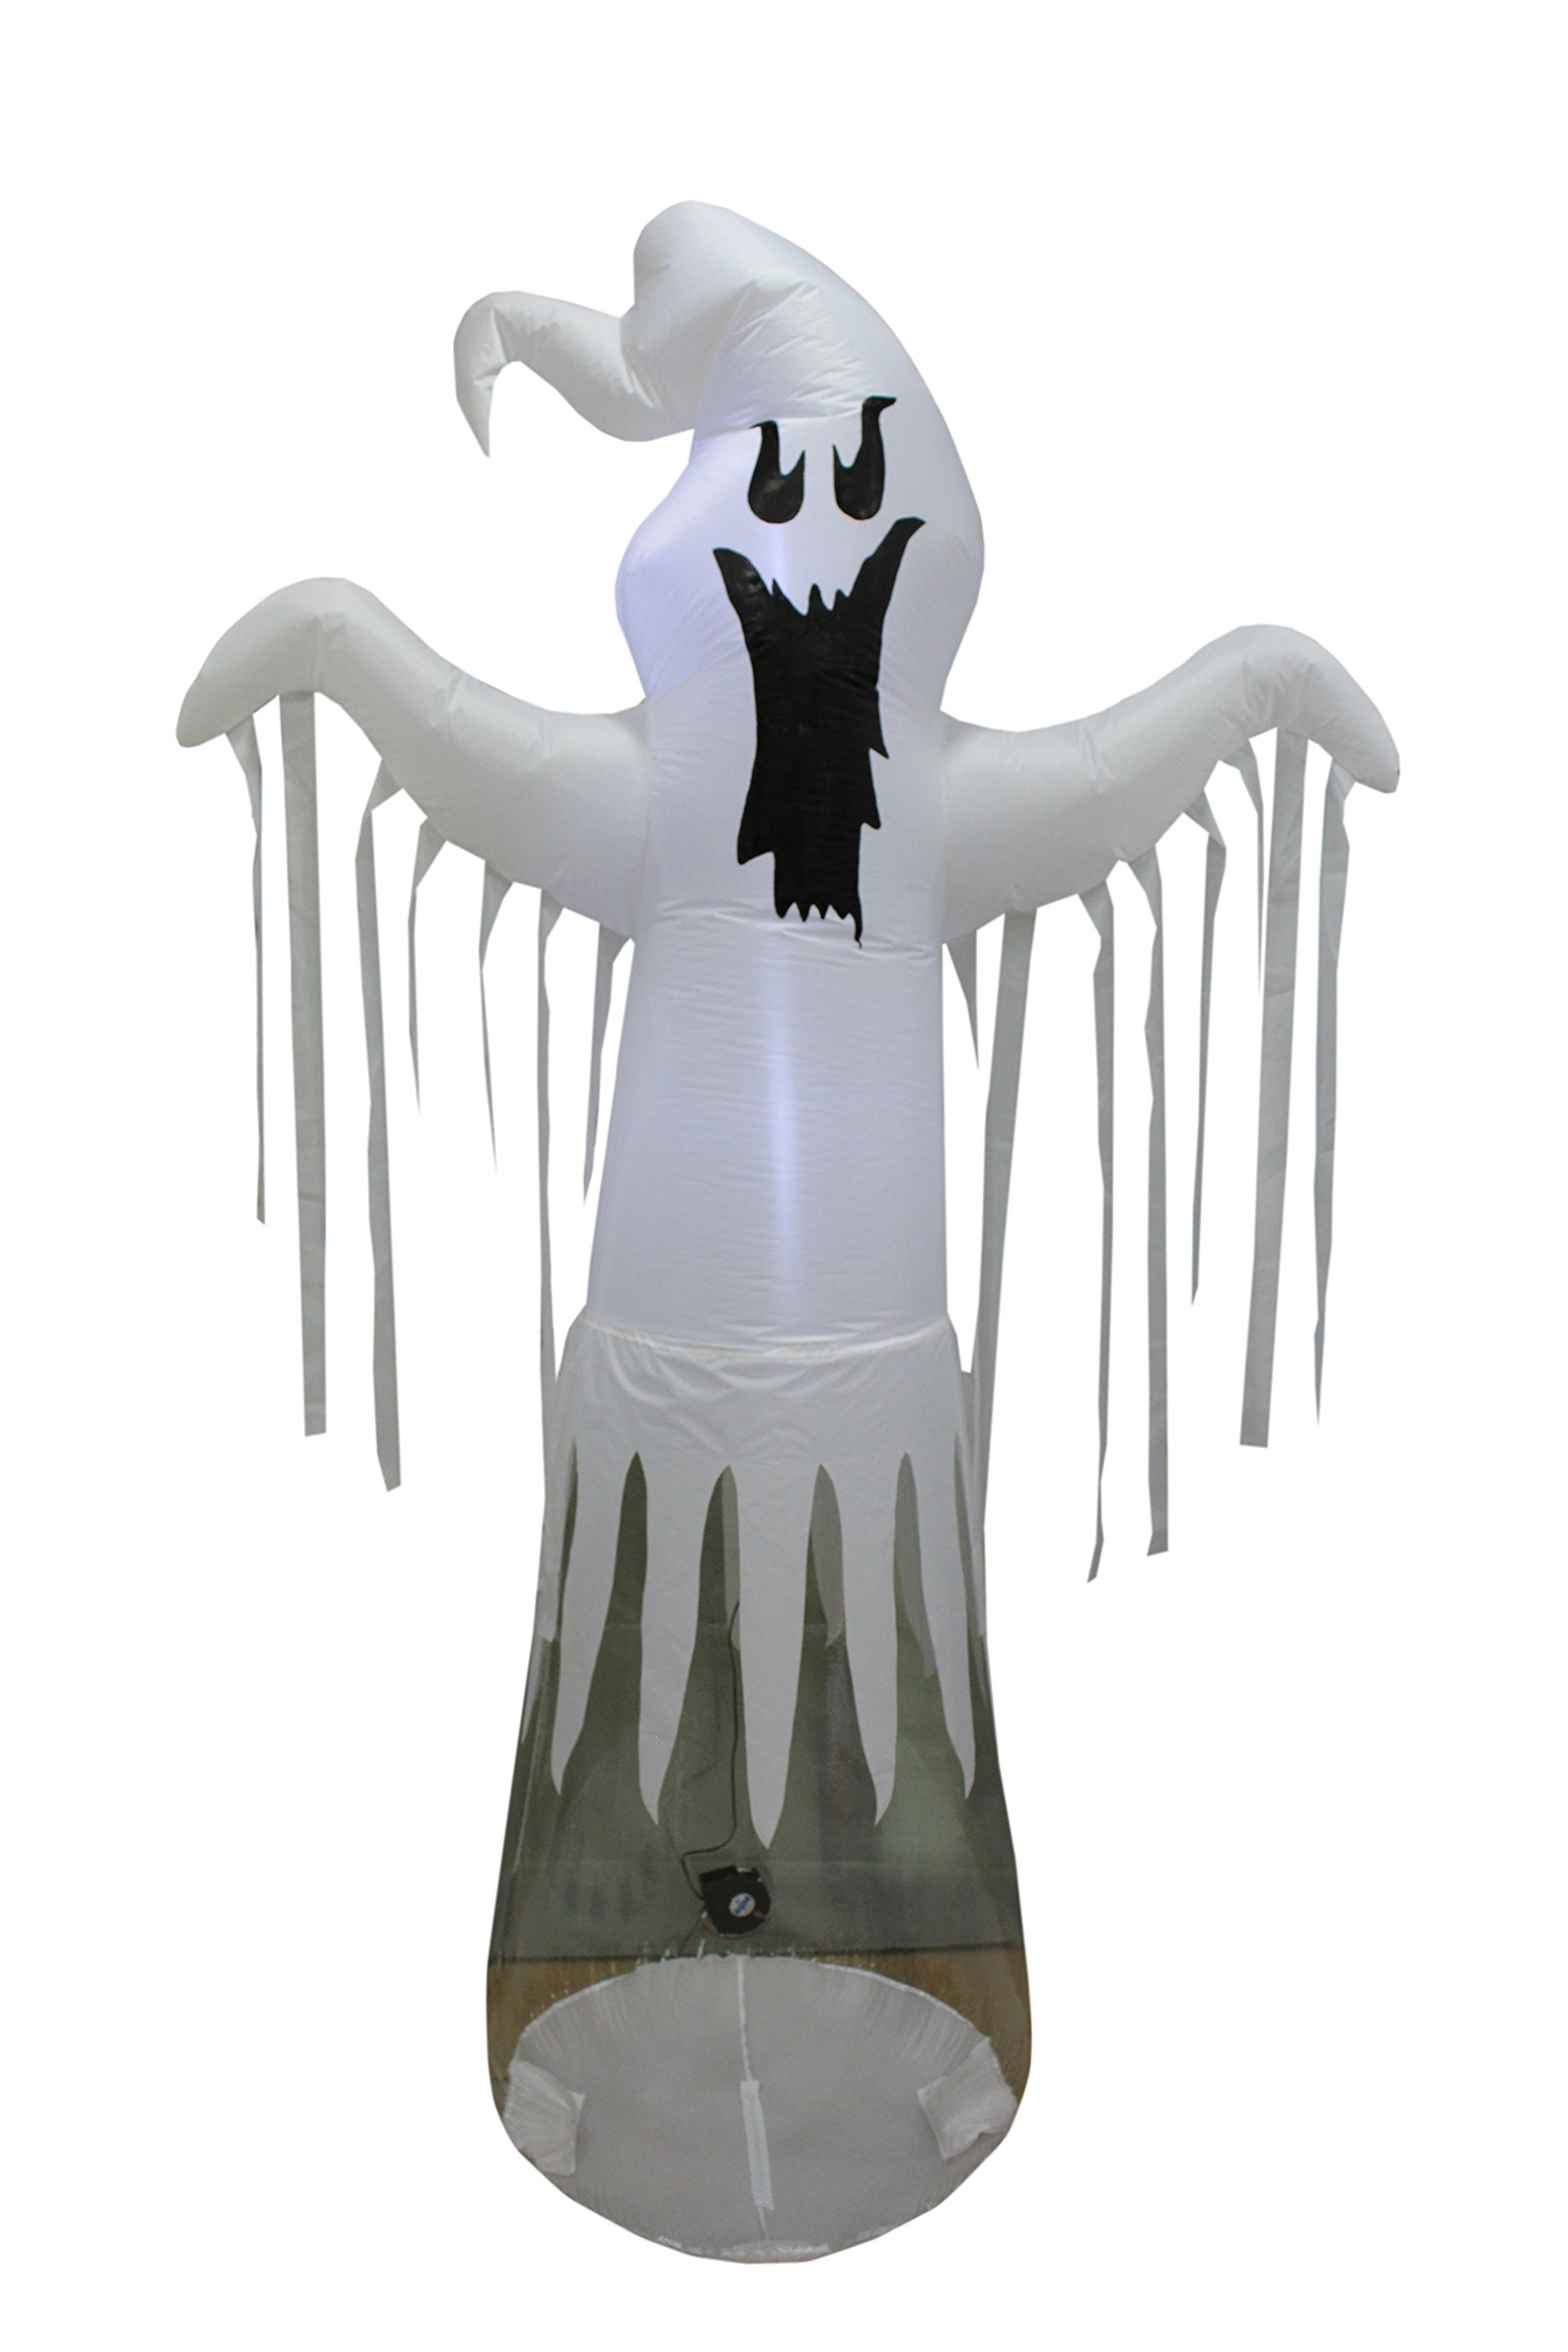 Sheerlund Inflatable Floating Ghost Halloween Decoration with Internal LED Lights - 8 Ft Tall, Approved for Indoor or Outdoor Use